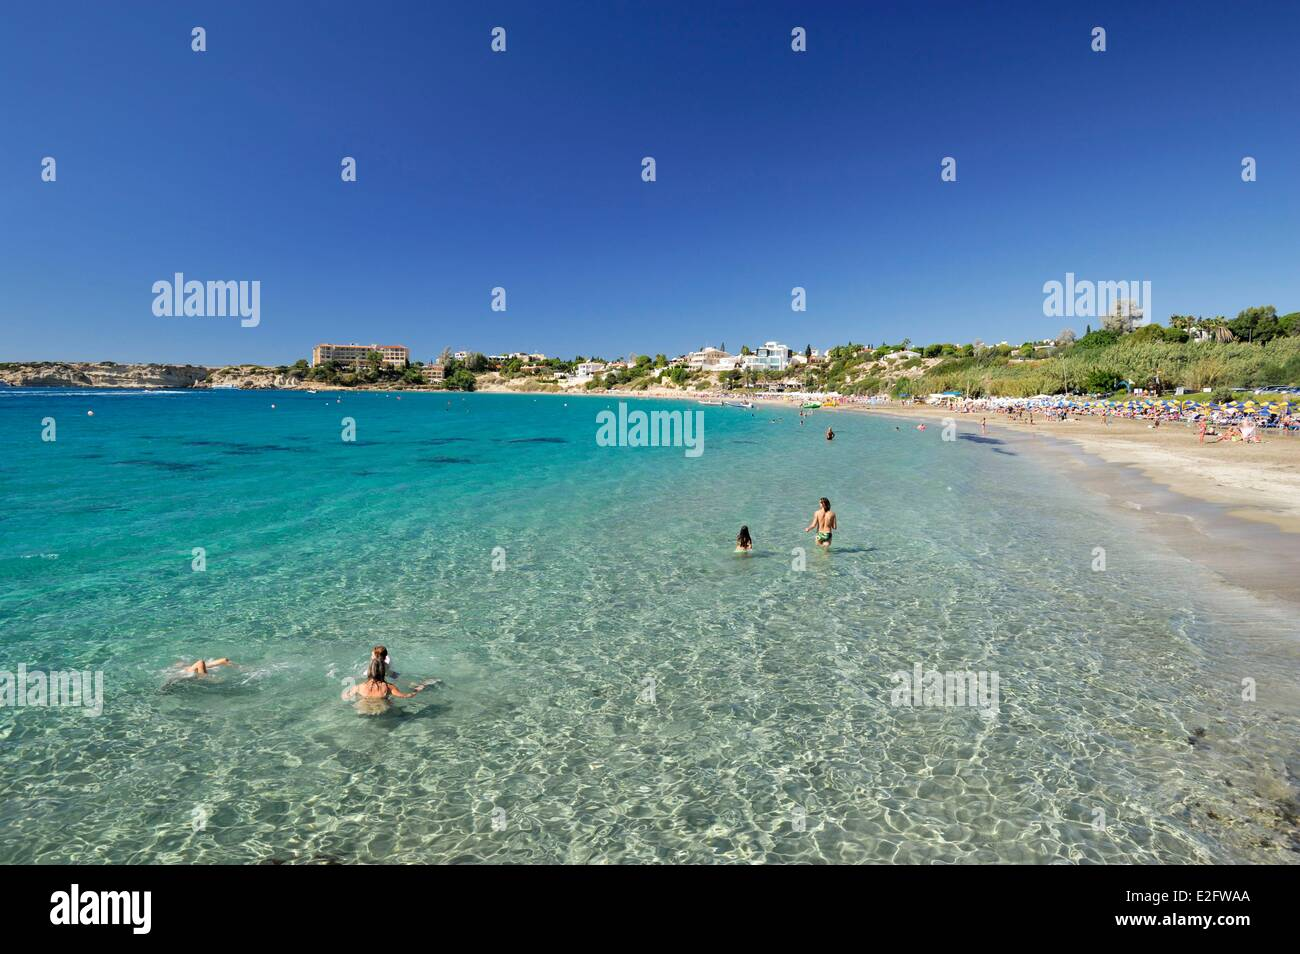 Cyprus Paphos District Maa Coral Bay Beach Vacationers In Water